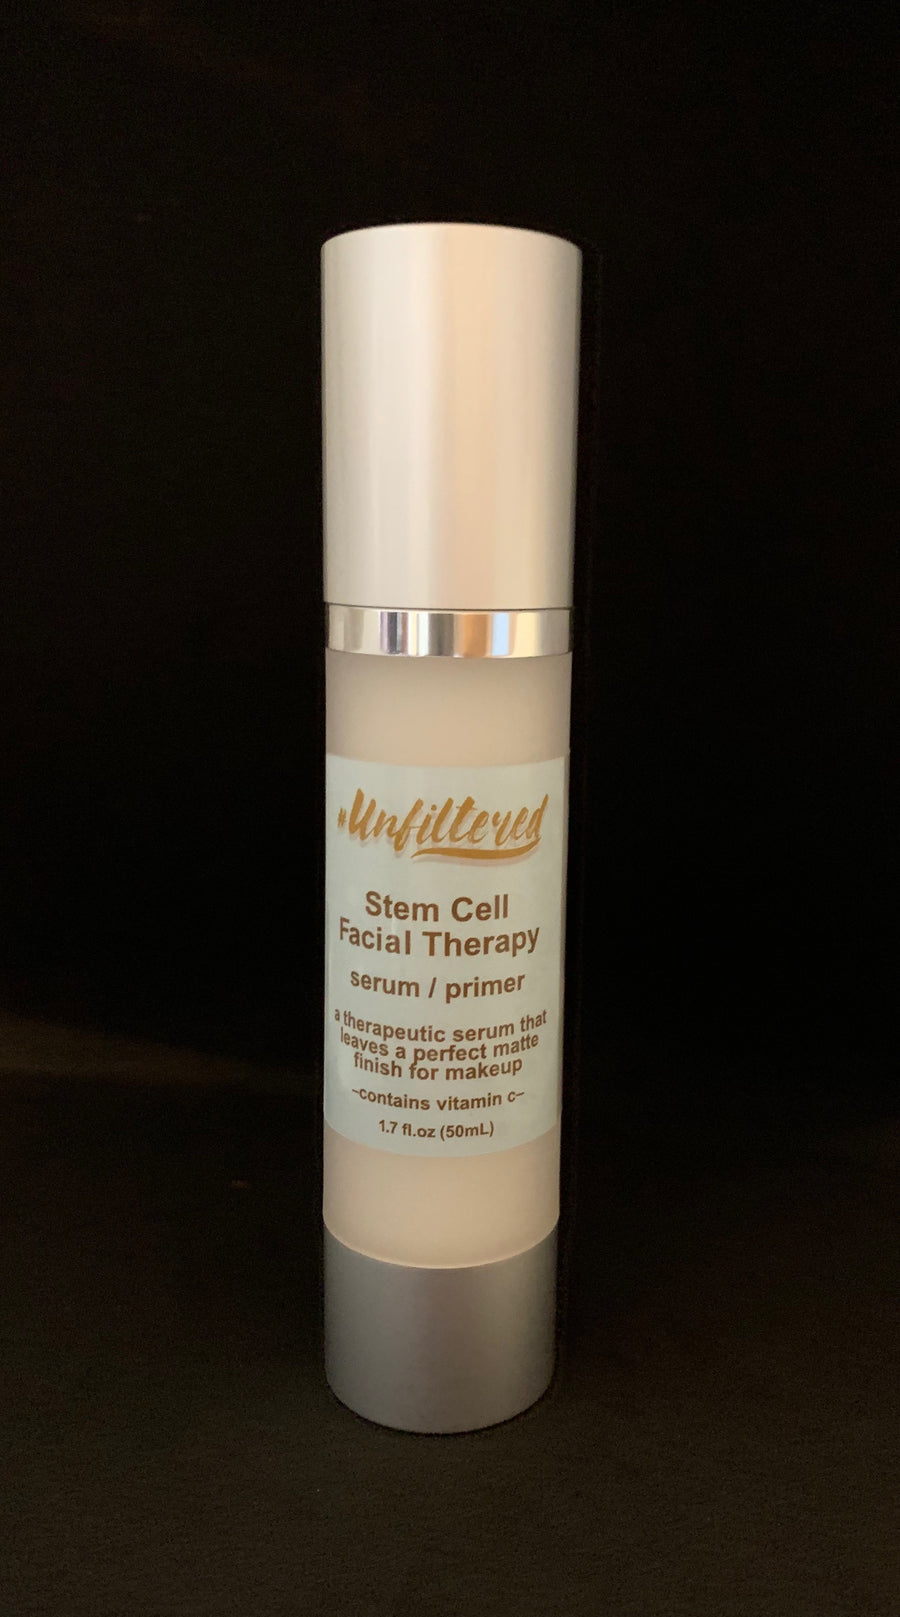 #Unfiltered Golden Chic Stem Cell Facial Therapy Serum/Primer